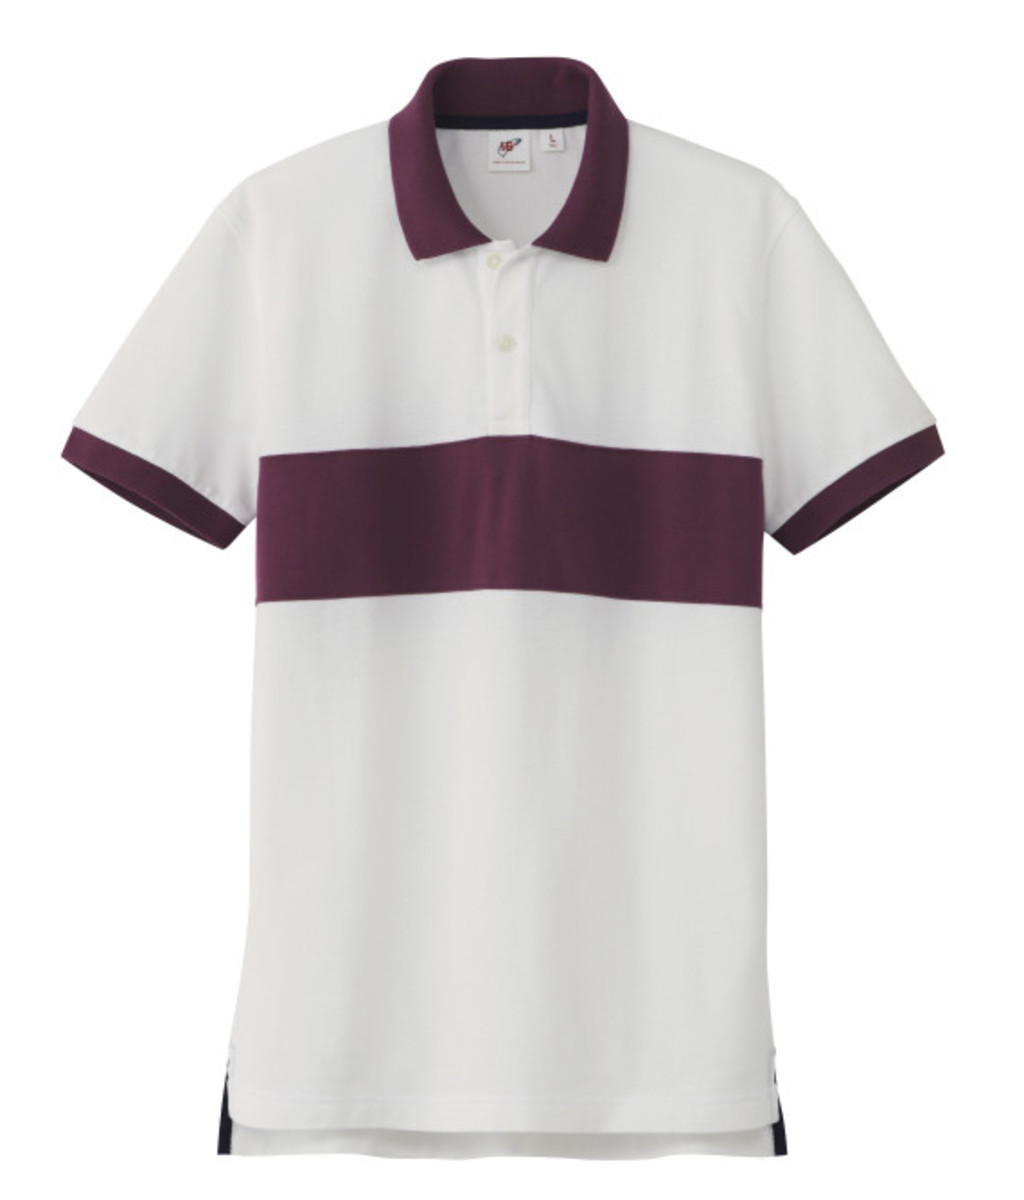 michael-bastian-x-uniqlo-mens-polo-shirt-collection-2013-24